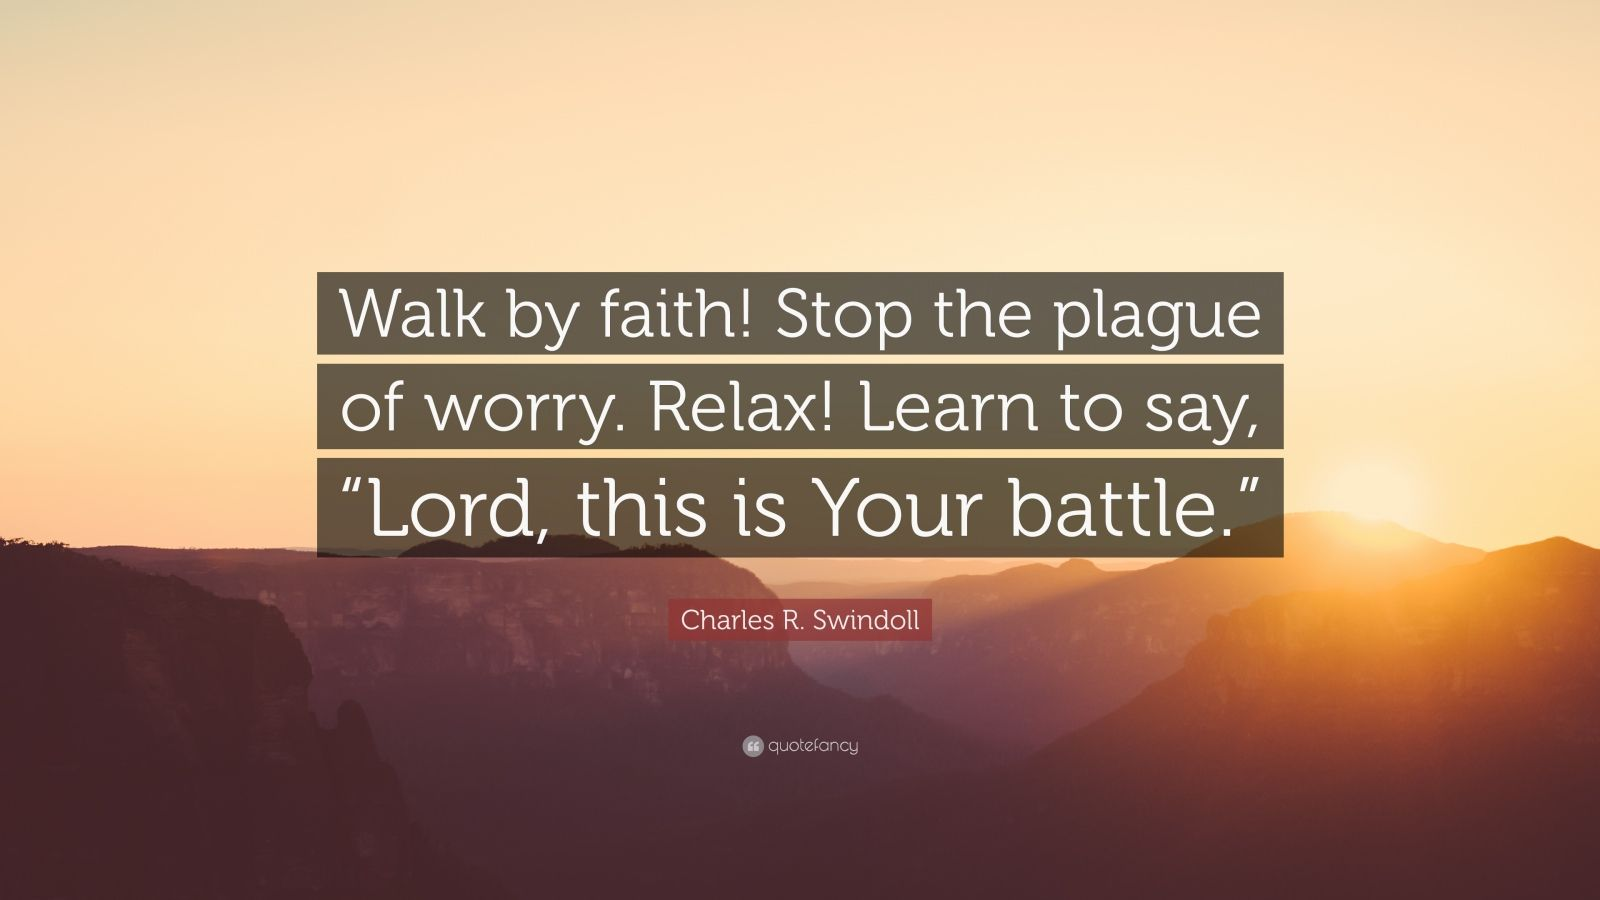 """Charles R. Swindoll Quote: """"Walk by faith! Stop the plague of worry. Relax! Learn to say, """"Lord, this is Your battle."""""""""""